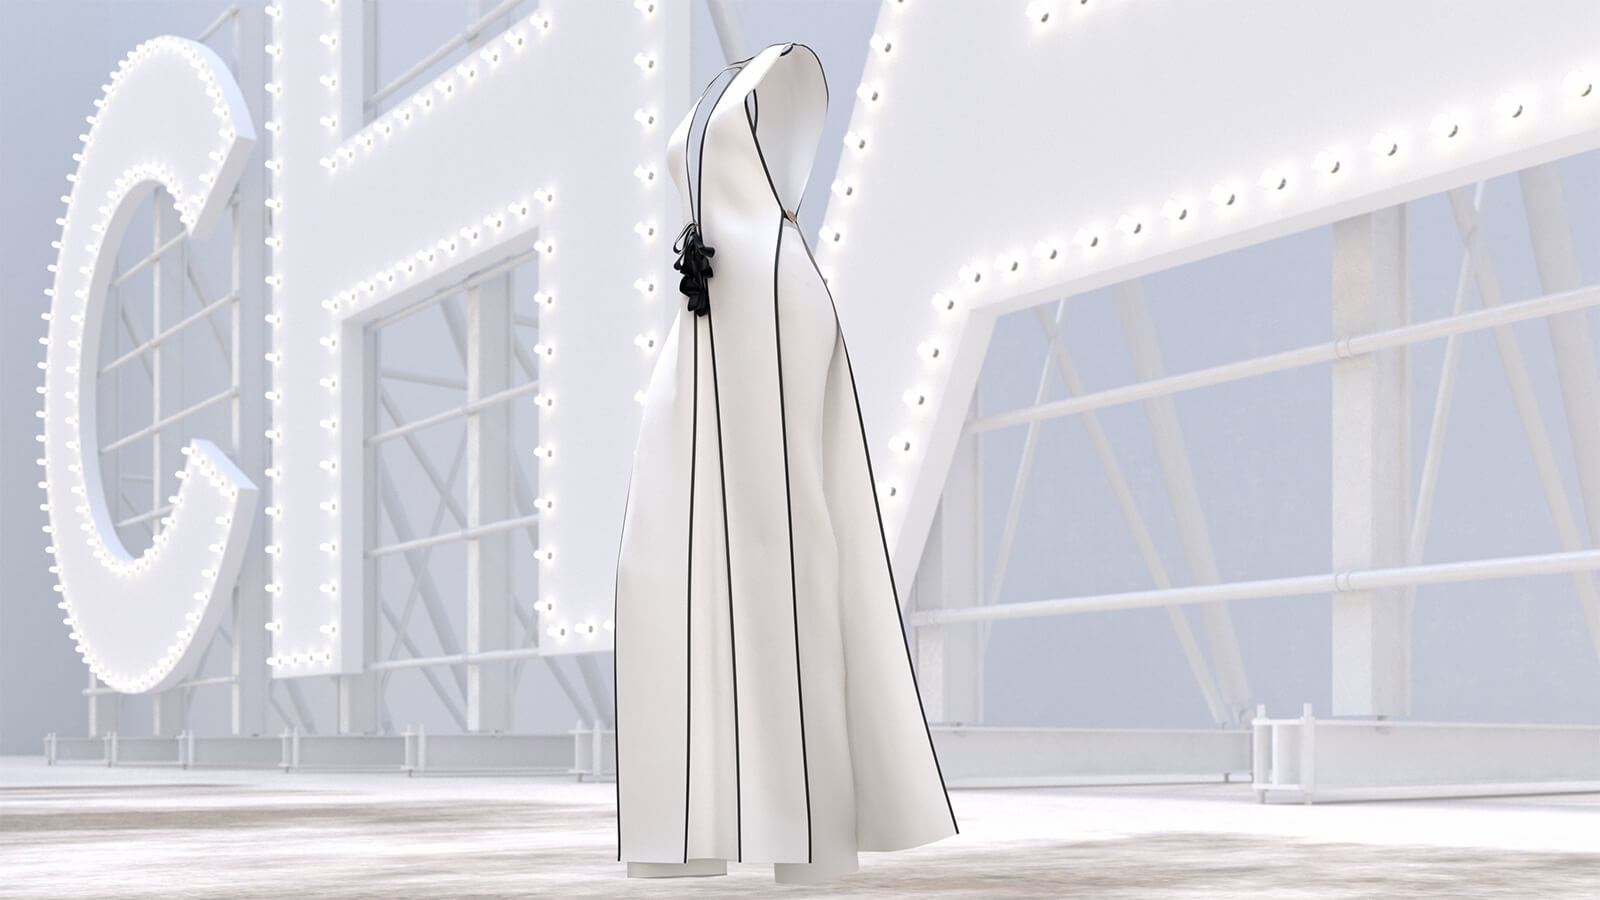 Digital fashion design software was used to create Chanel's Look 63. Image made by VSLB Creative Studio, based in Seoul.